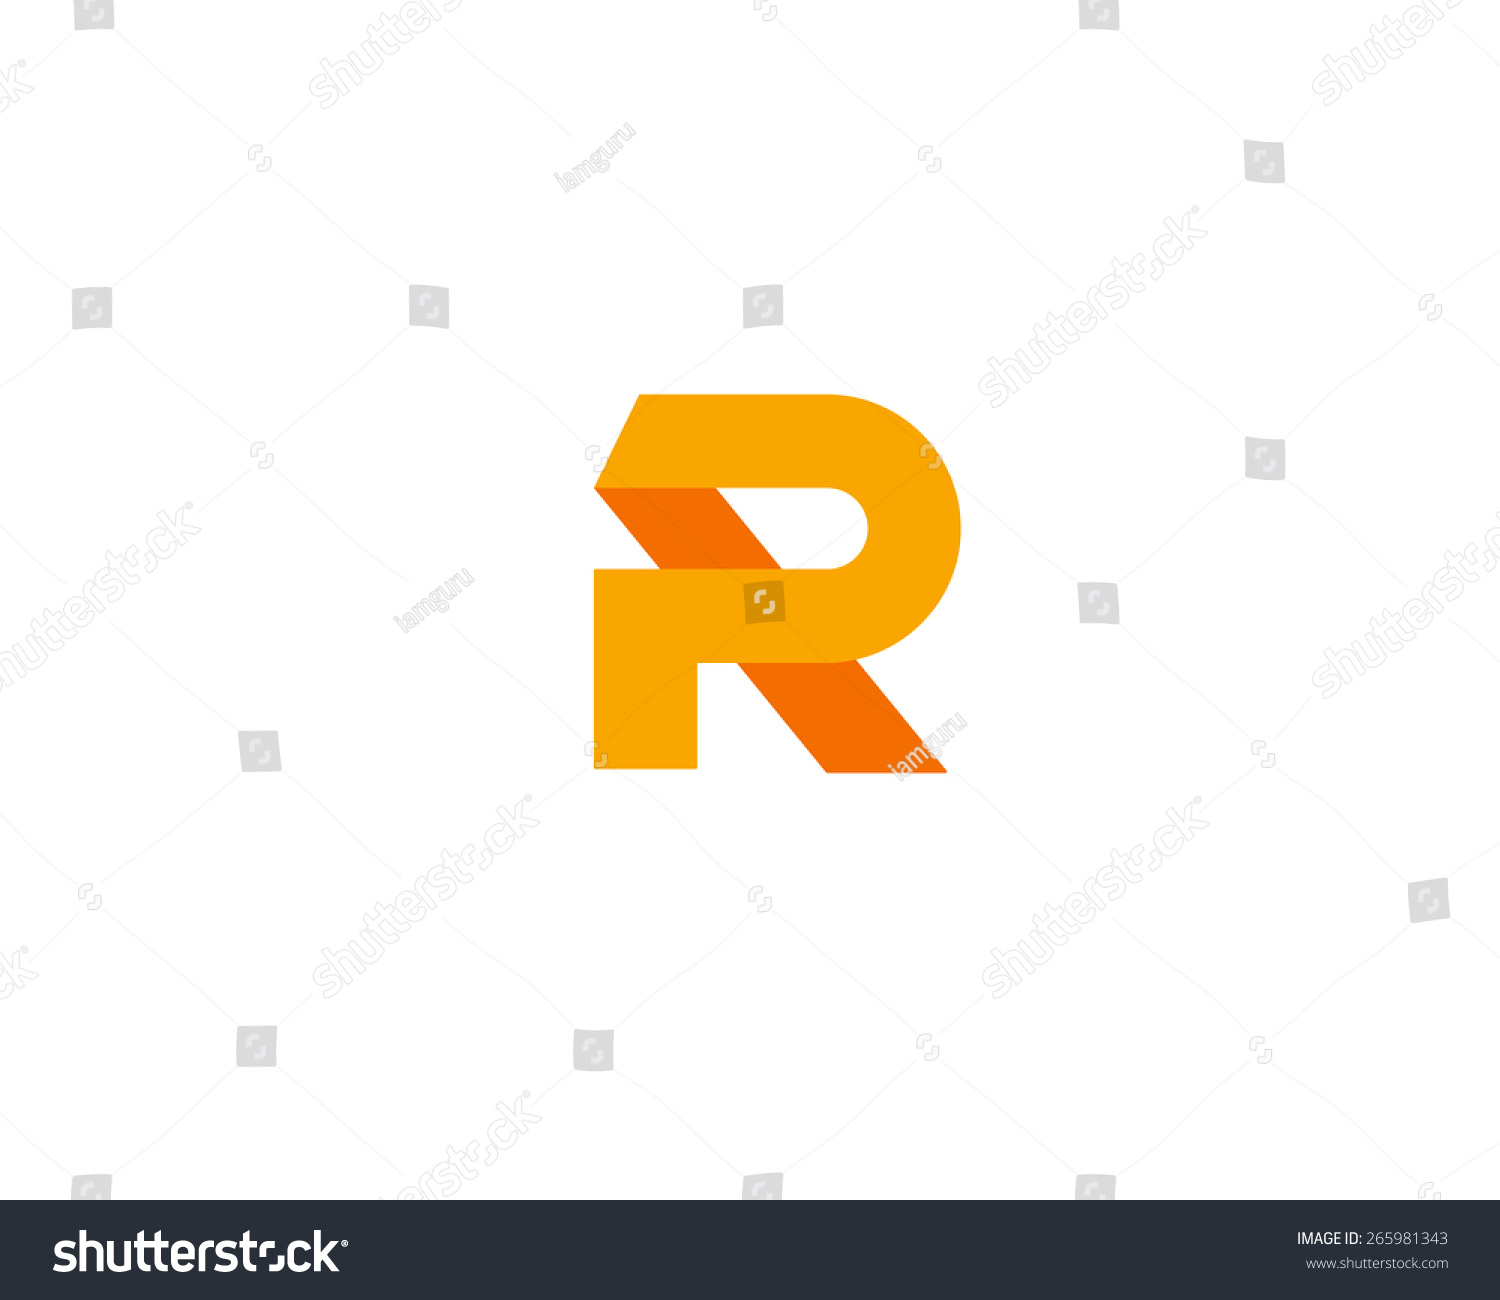 abstract letter r logo design template colorful creative sign universal vector icon